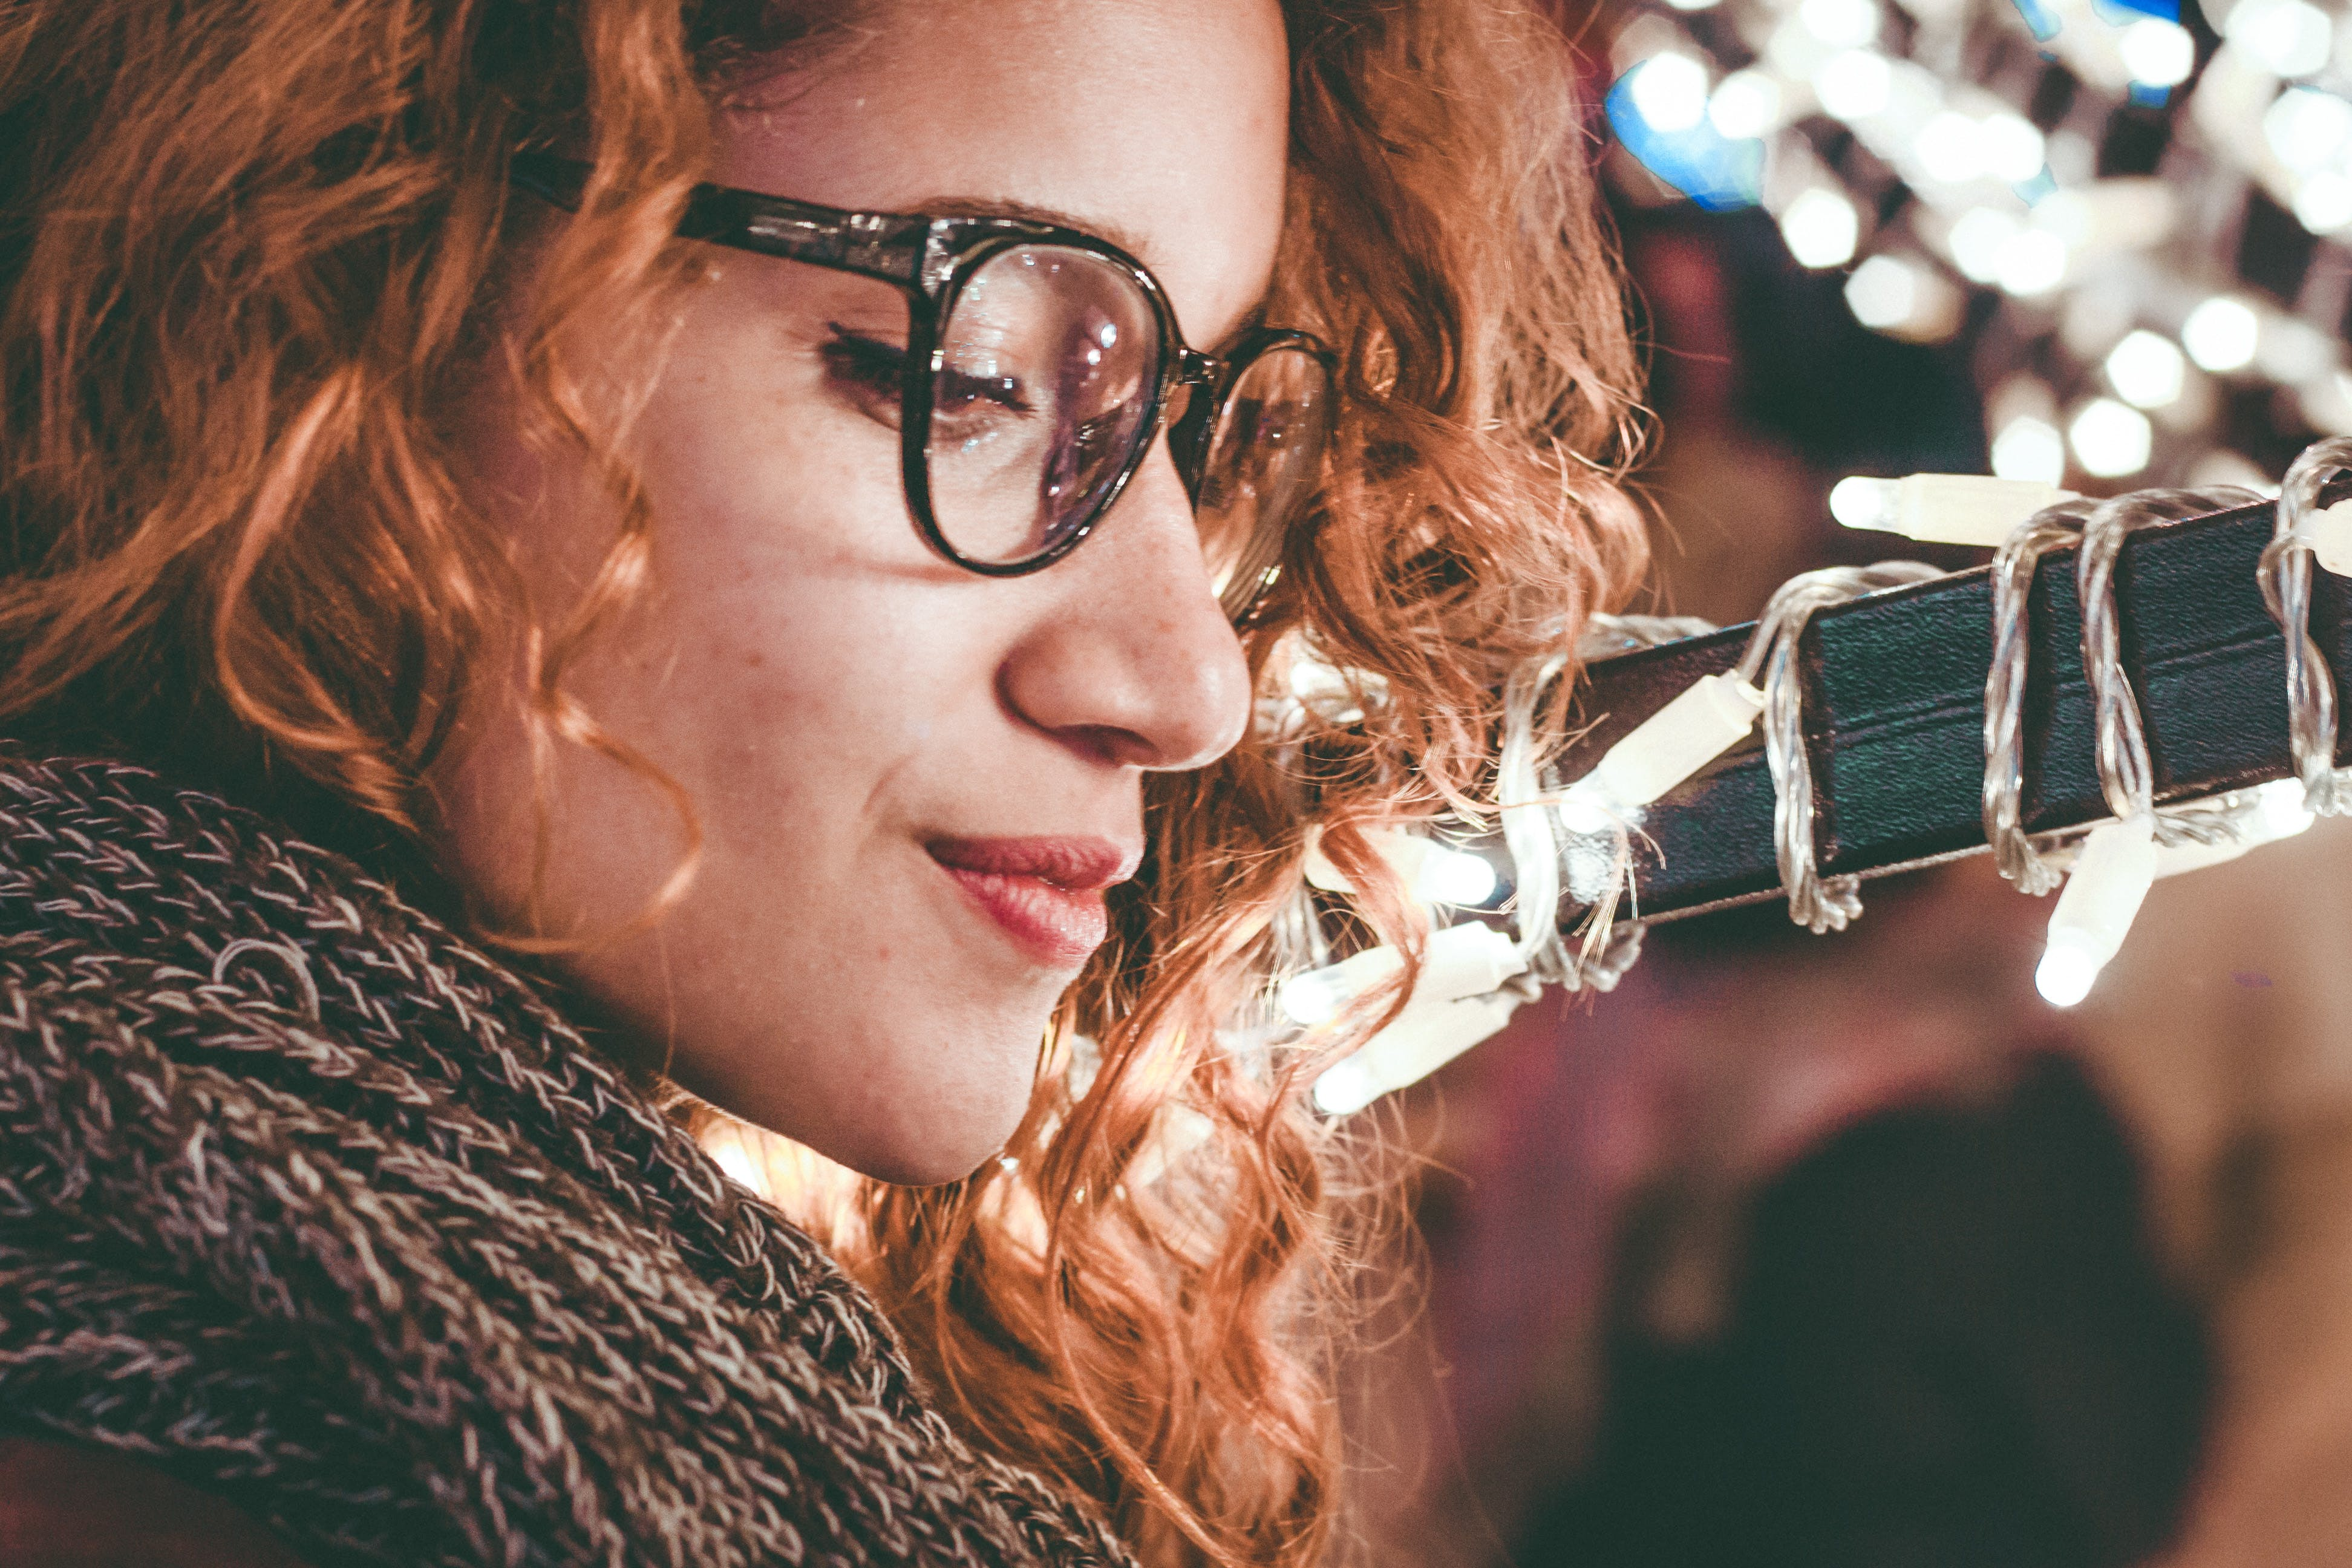 Close-Up Photo of a Woman Wearing Eyeglasses